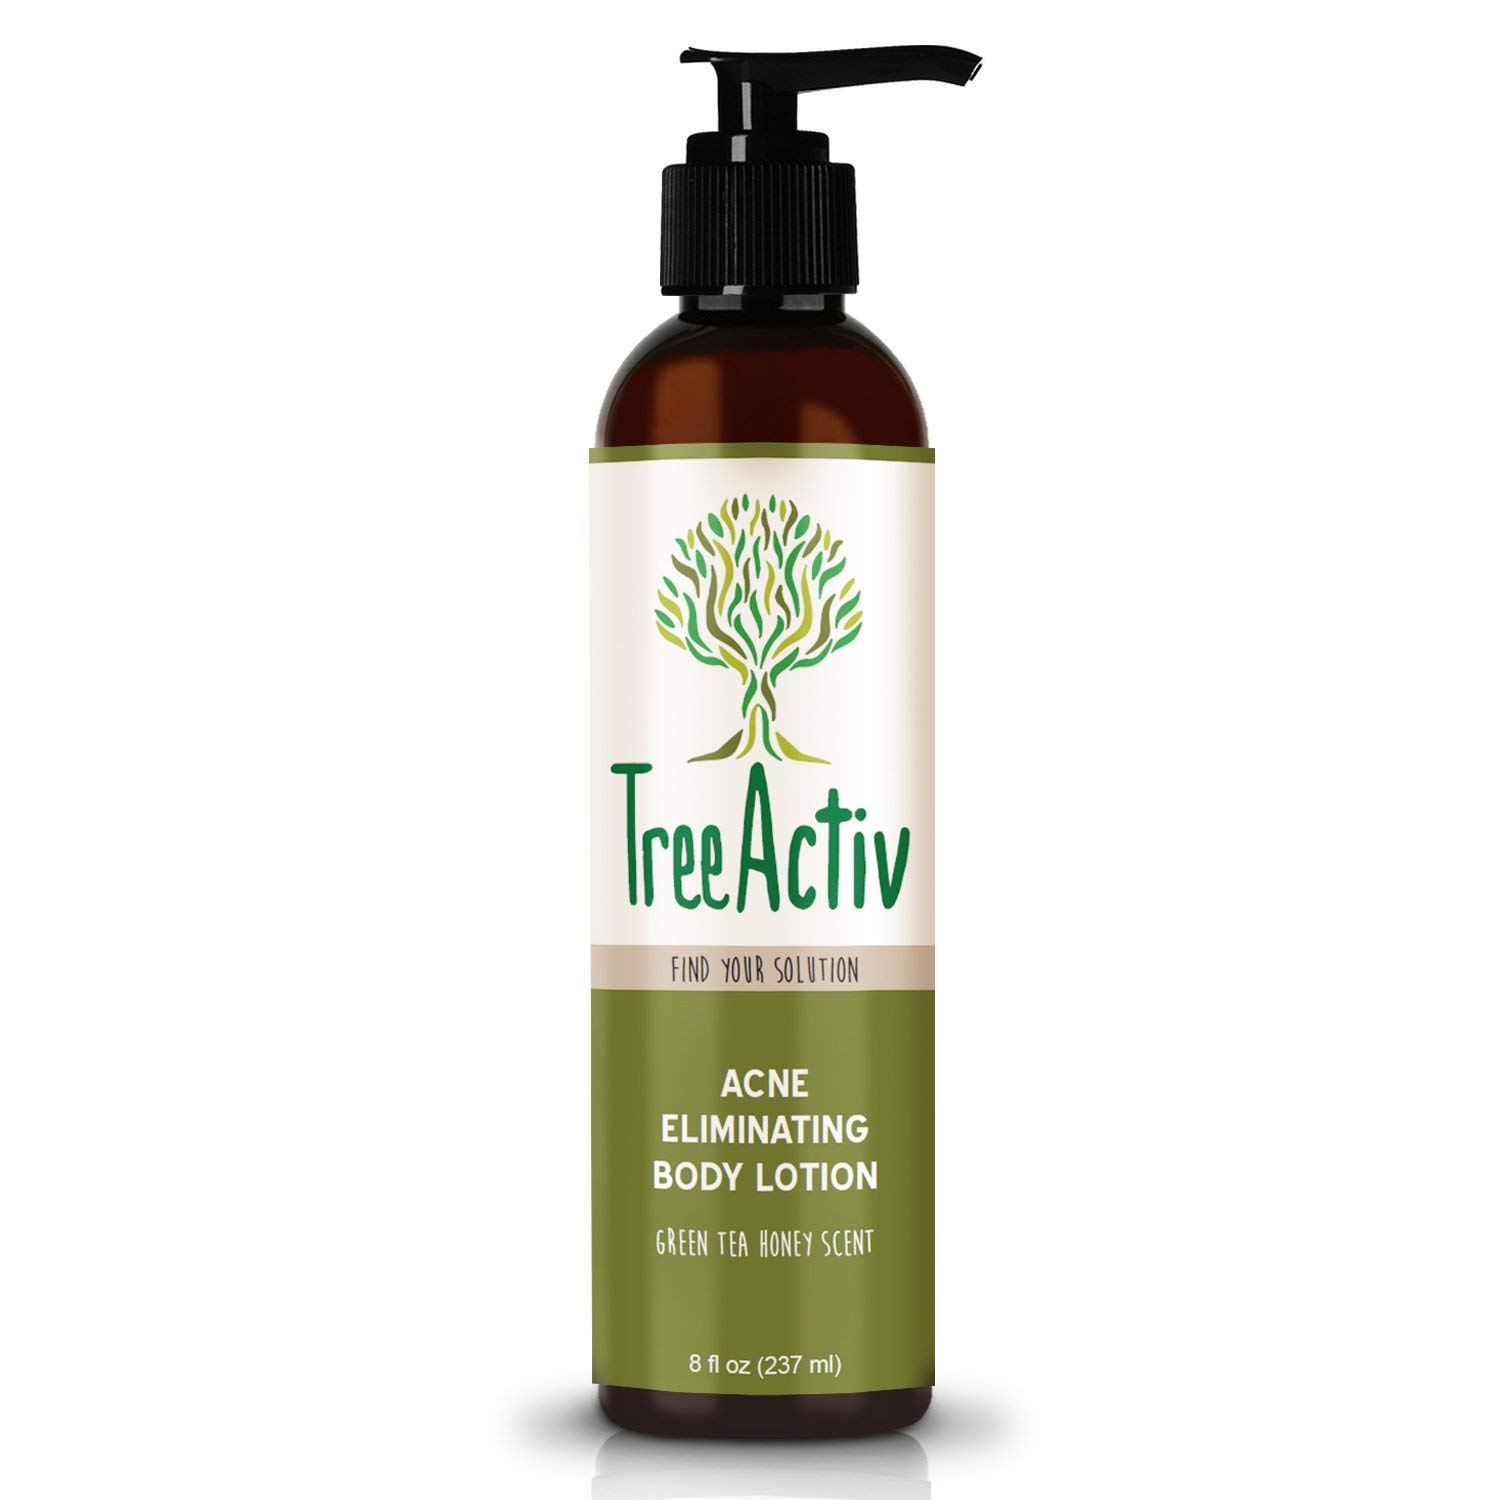 TreeActiv Acne Eliminating Body Lotion 8 fl oz, Clears Body, Back, Butt and Shoulder Acne, Anti-Acne Moisturizer, Prevents Future Breakouts, Green Tea and Honey Scent by TreeActiv